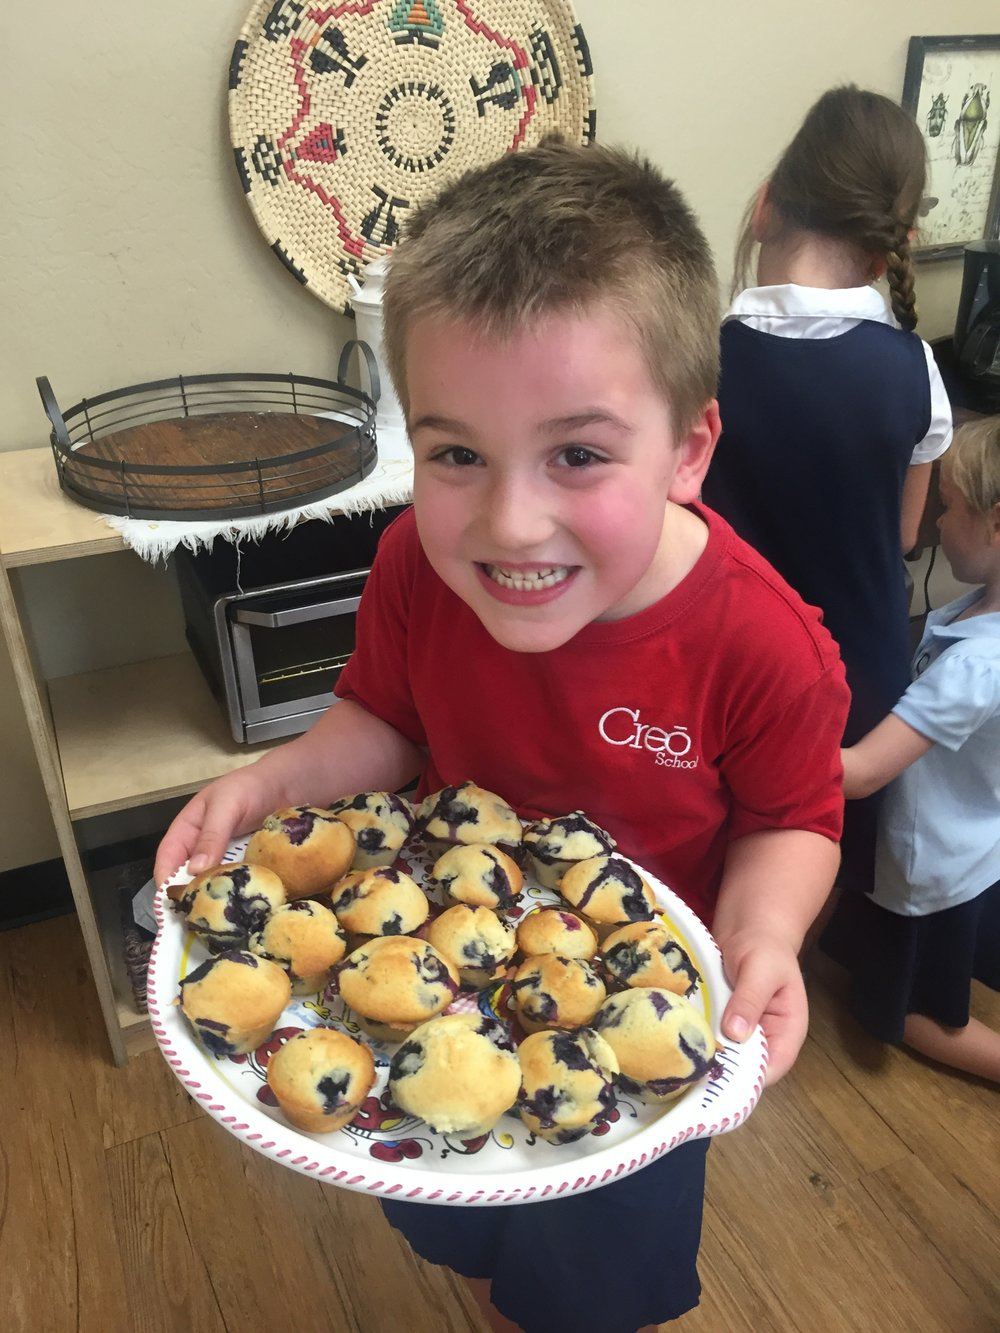 Freshly baked Birthday Blueberry Muffins by children!